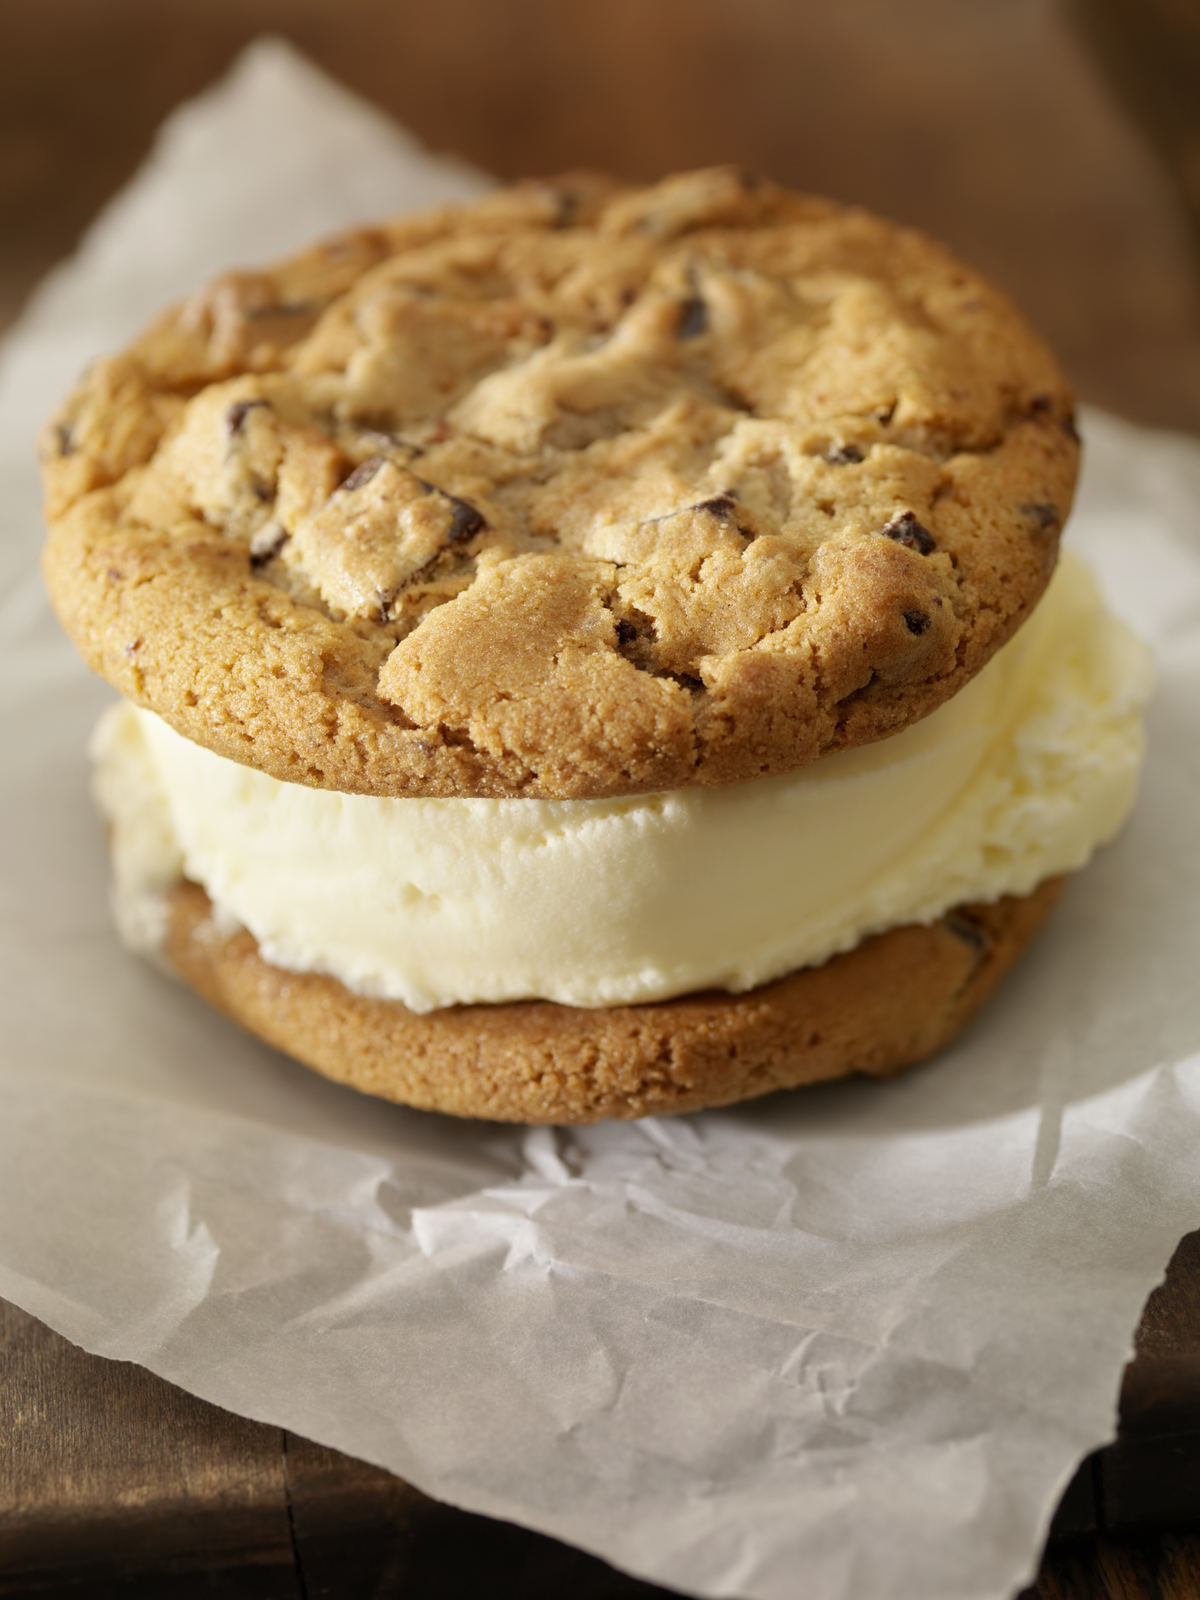 Chocolate Chip Cookie Ice Cream Sandwiches With Vanilla Ice Cream -Photographed on Hasselblad H3D-39mb Camera